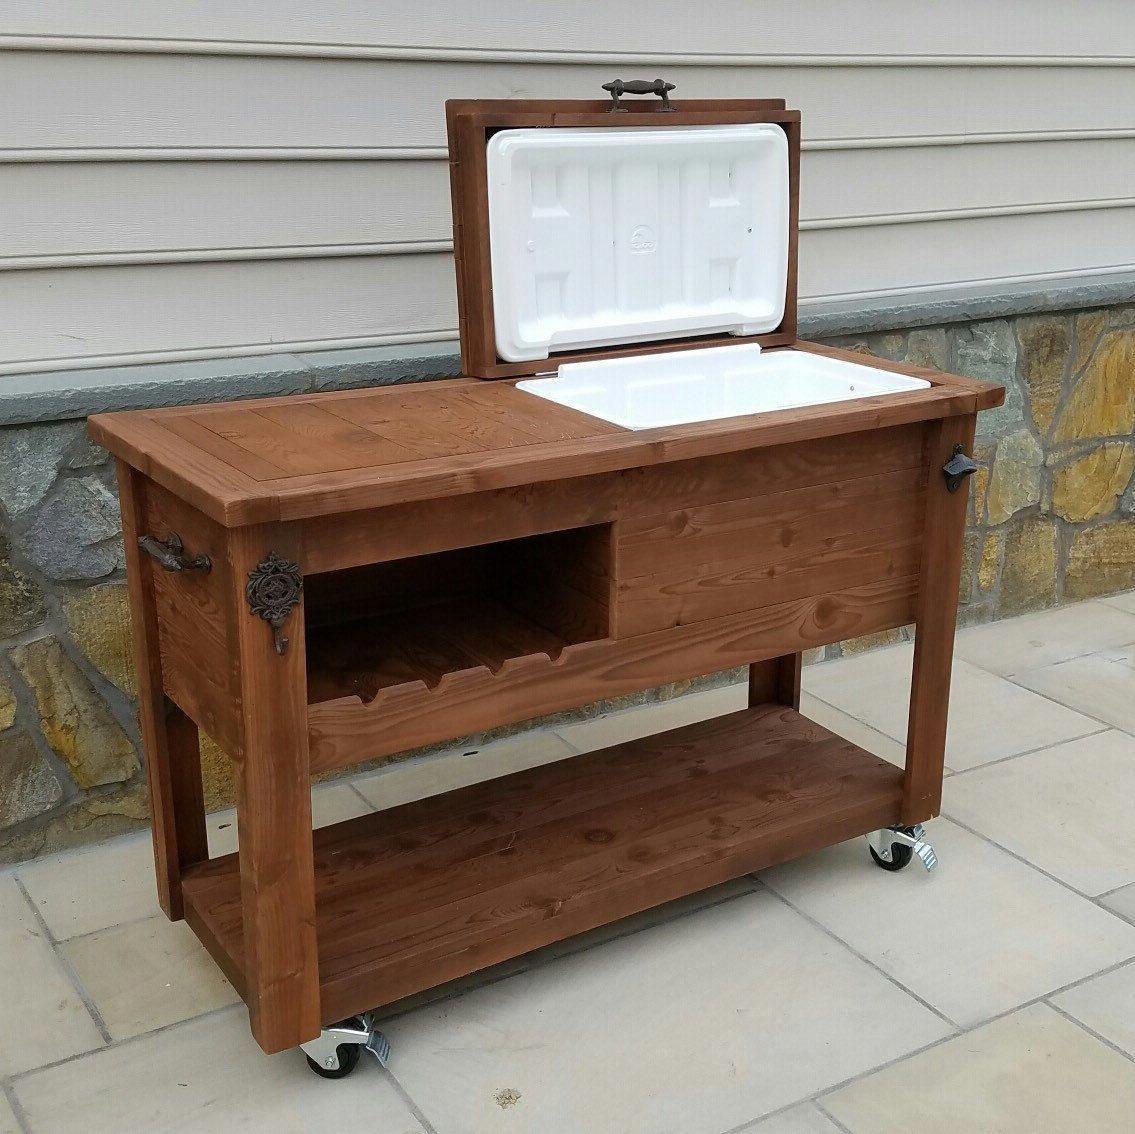 Rustic Wooden Cooler Table Bar Cart Wine Bar With Mini Fridge Console Table Storage Bar Cabinet Outdoor Rolling Cart Reclaimed Wood Wooden Cooler Diy Outdoor Bar Outdoor Bar Cart